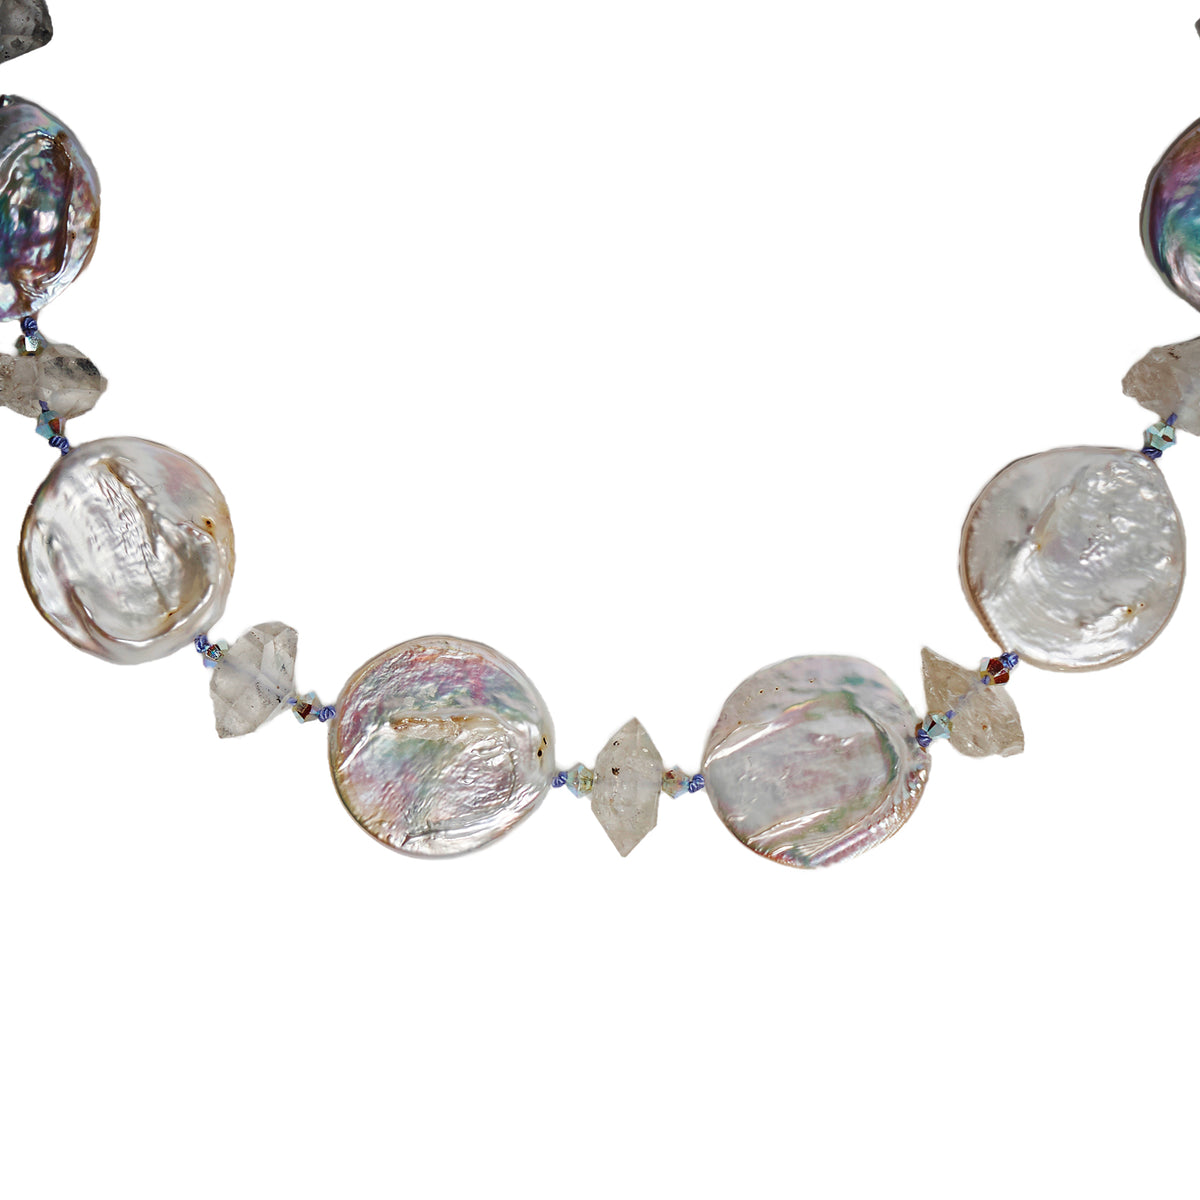 The Calm after the Storm necklace (with Herkimer diamonds)